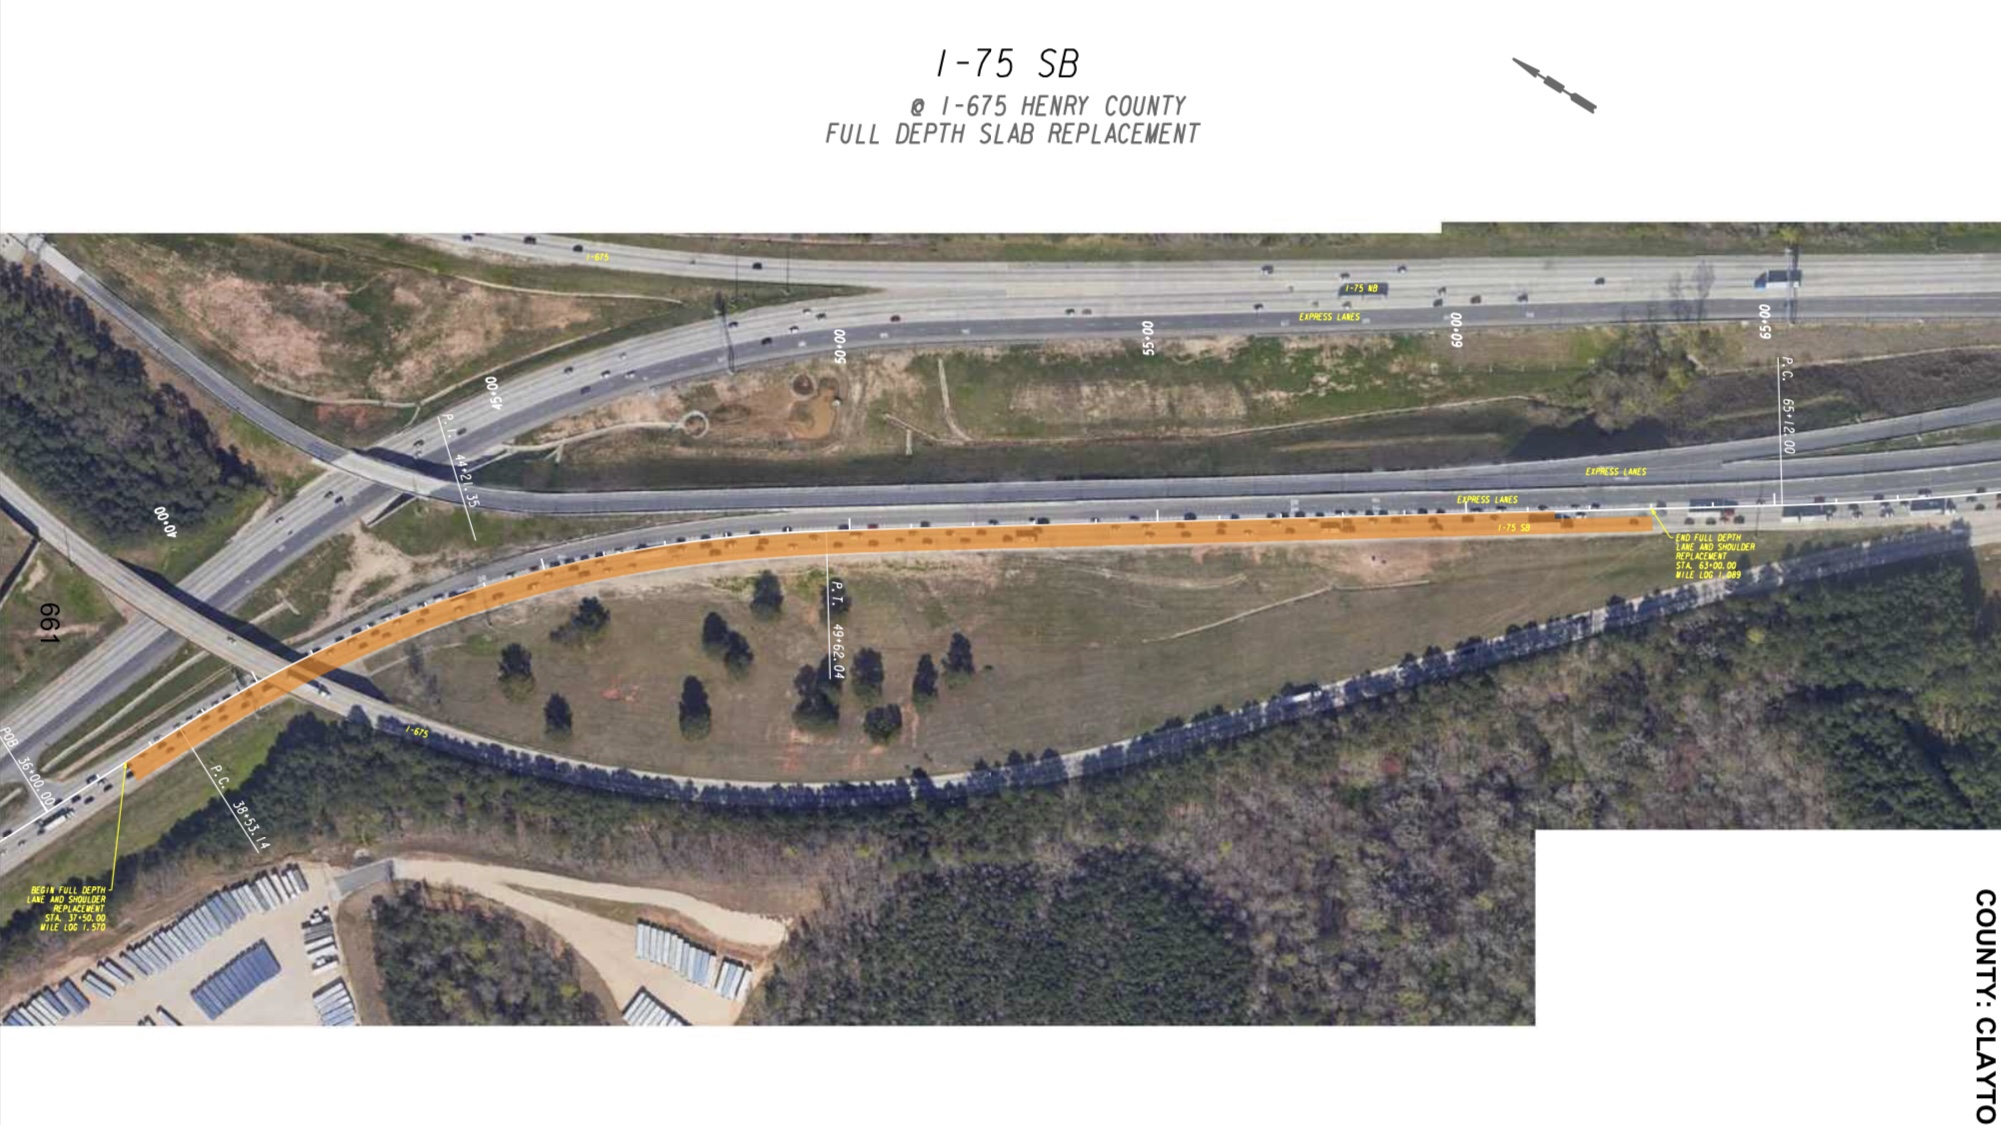 Full depth replacement at I-75 southbound (Georgia DOT photo)